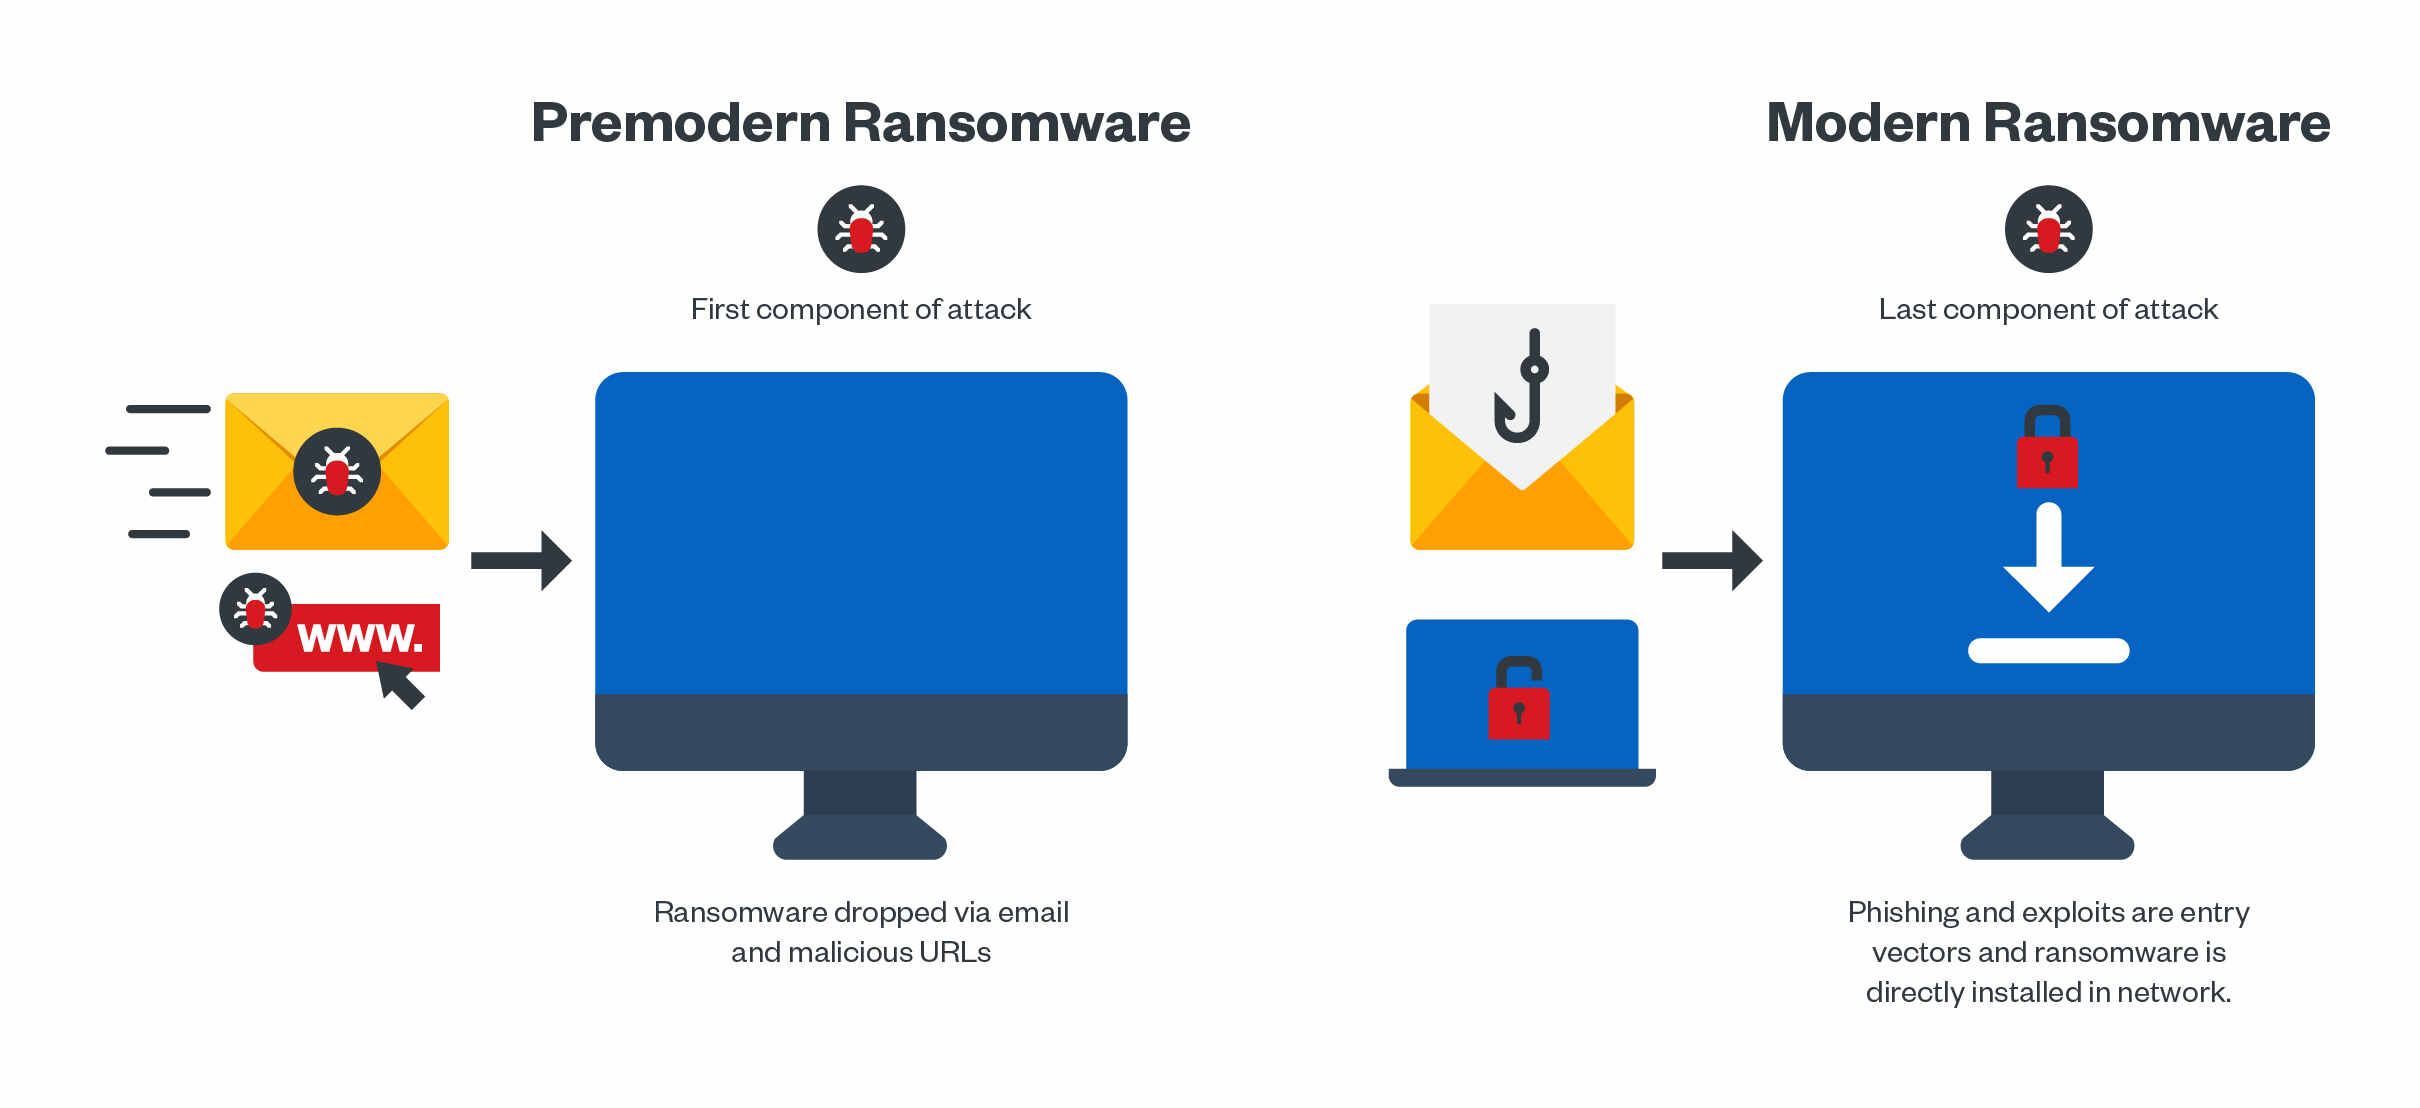 Figure 1. The differences in modern and premodern ransomware